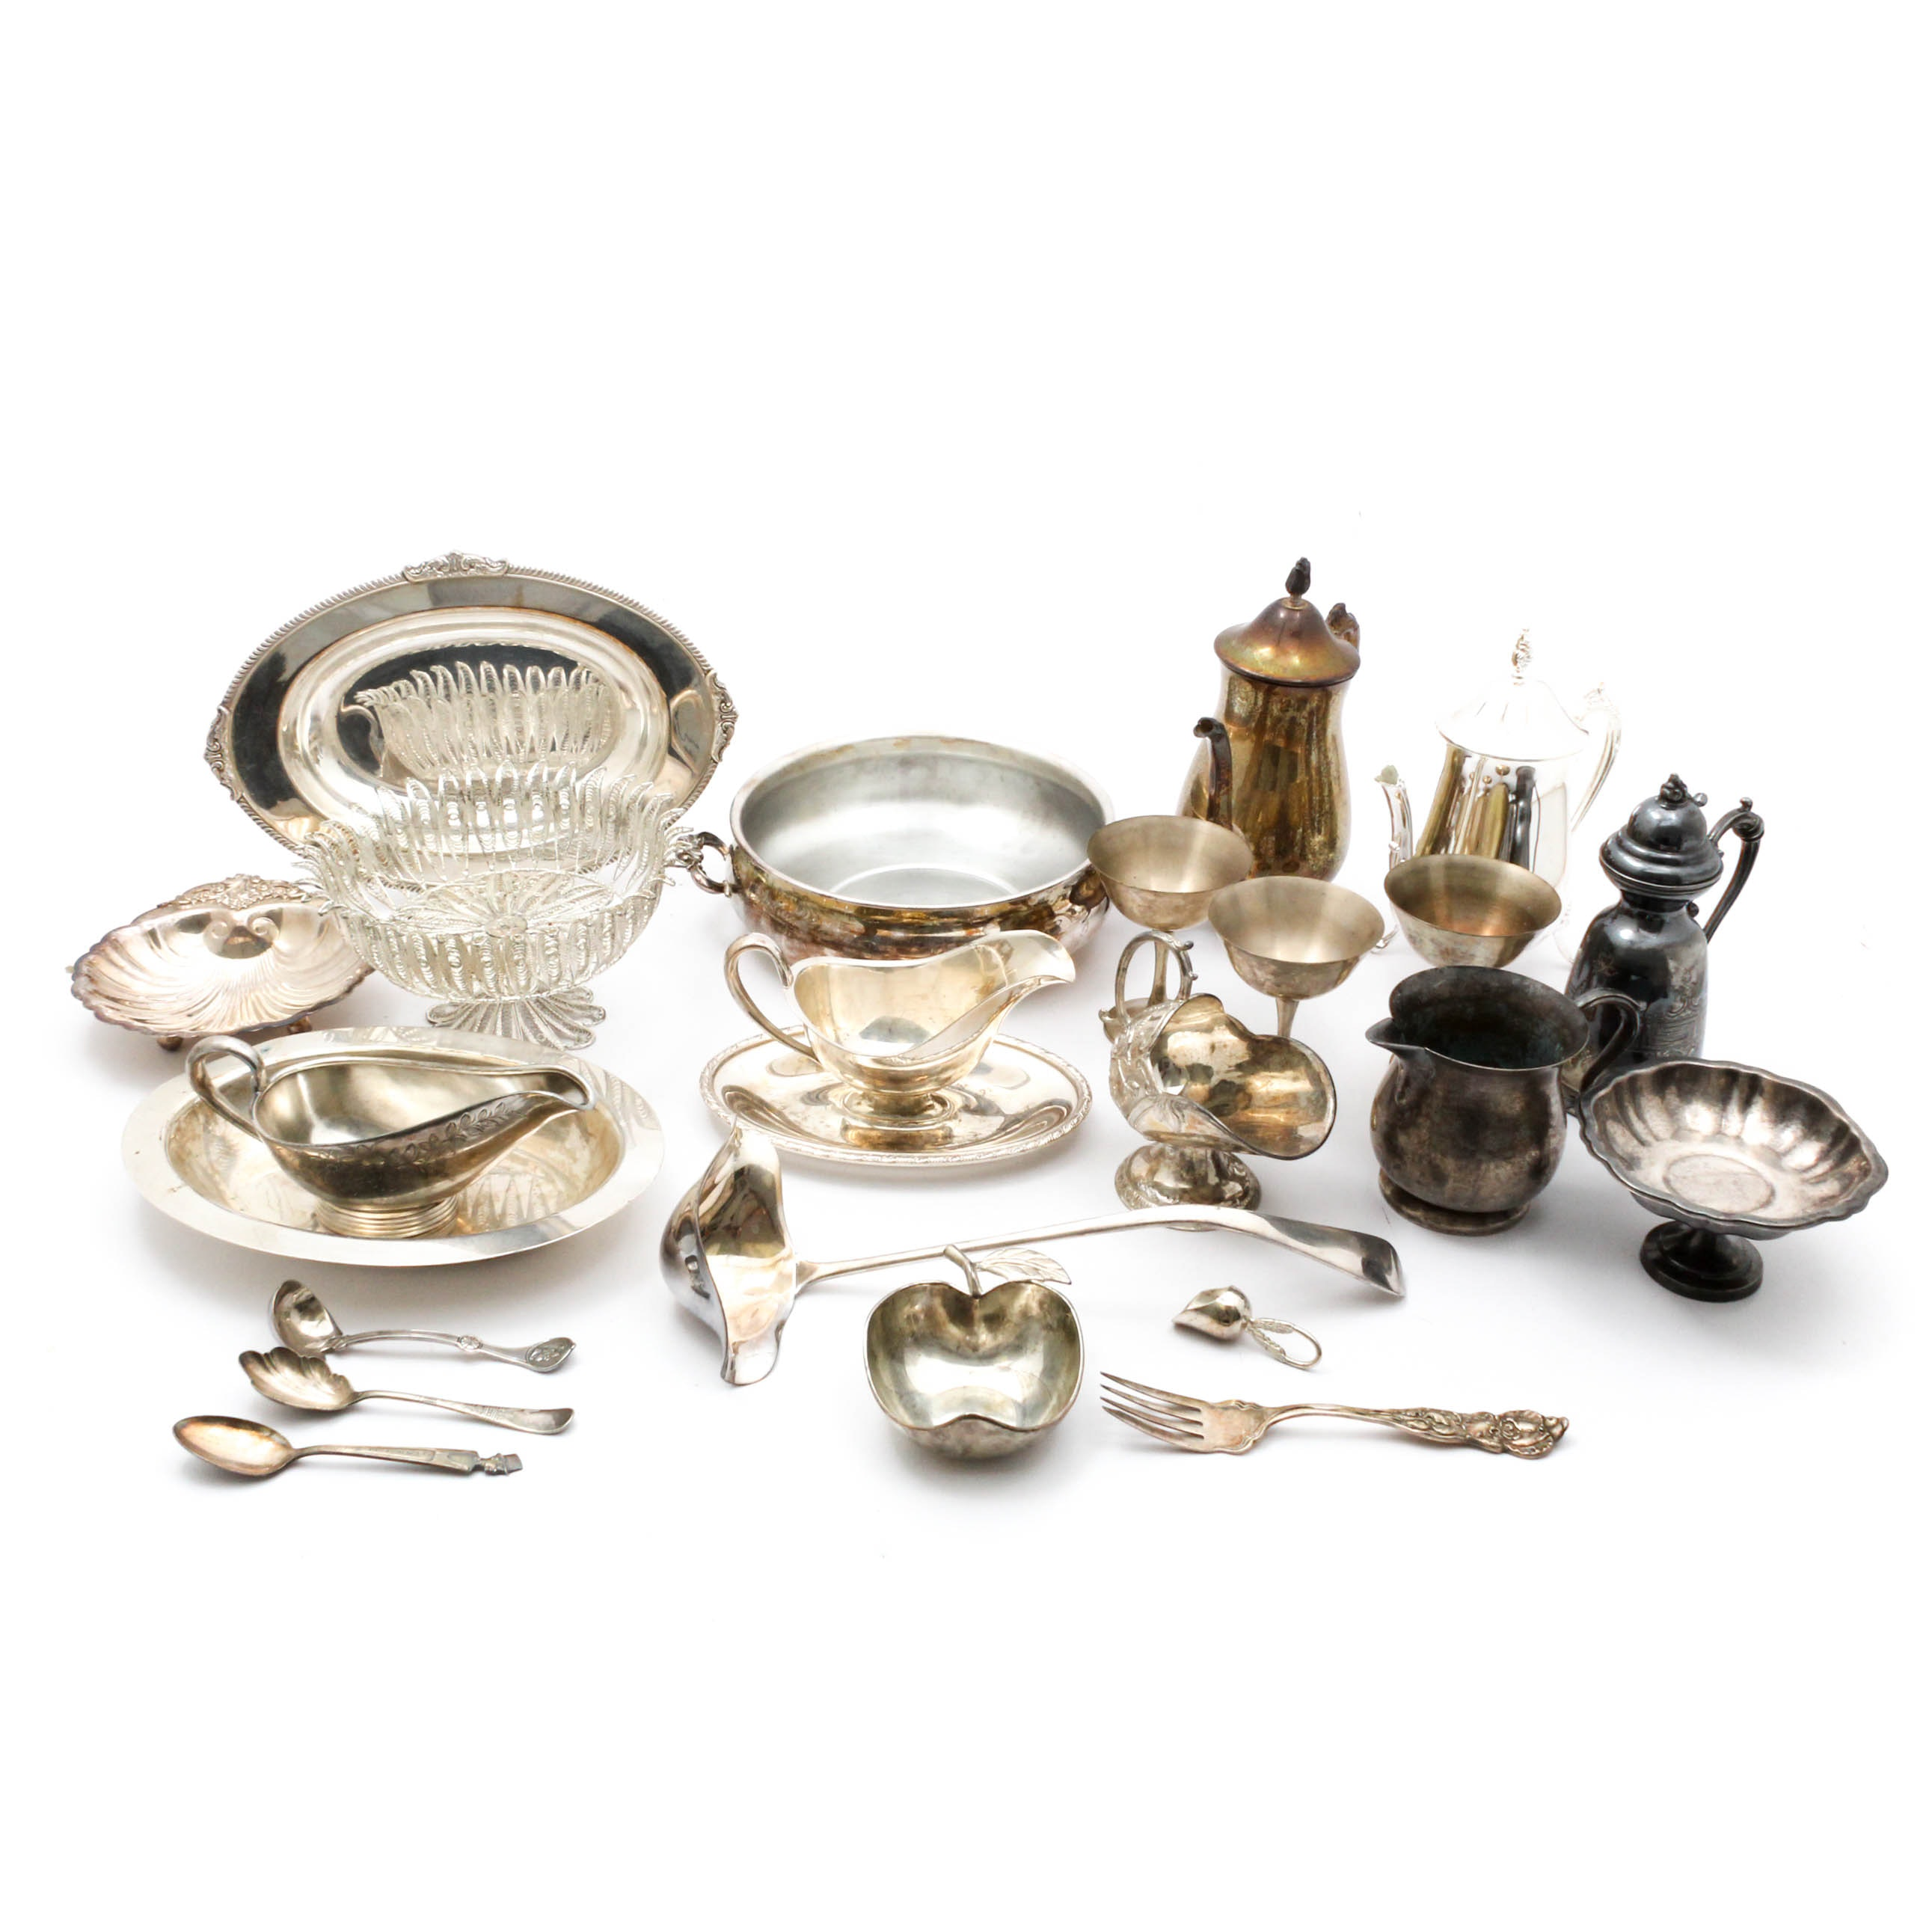 Silver Plate Serveware Featuring Reed & Barton